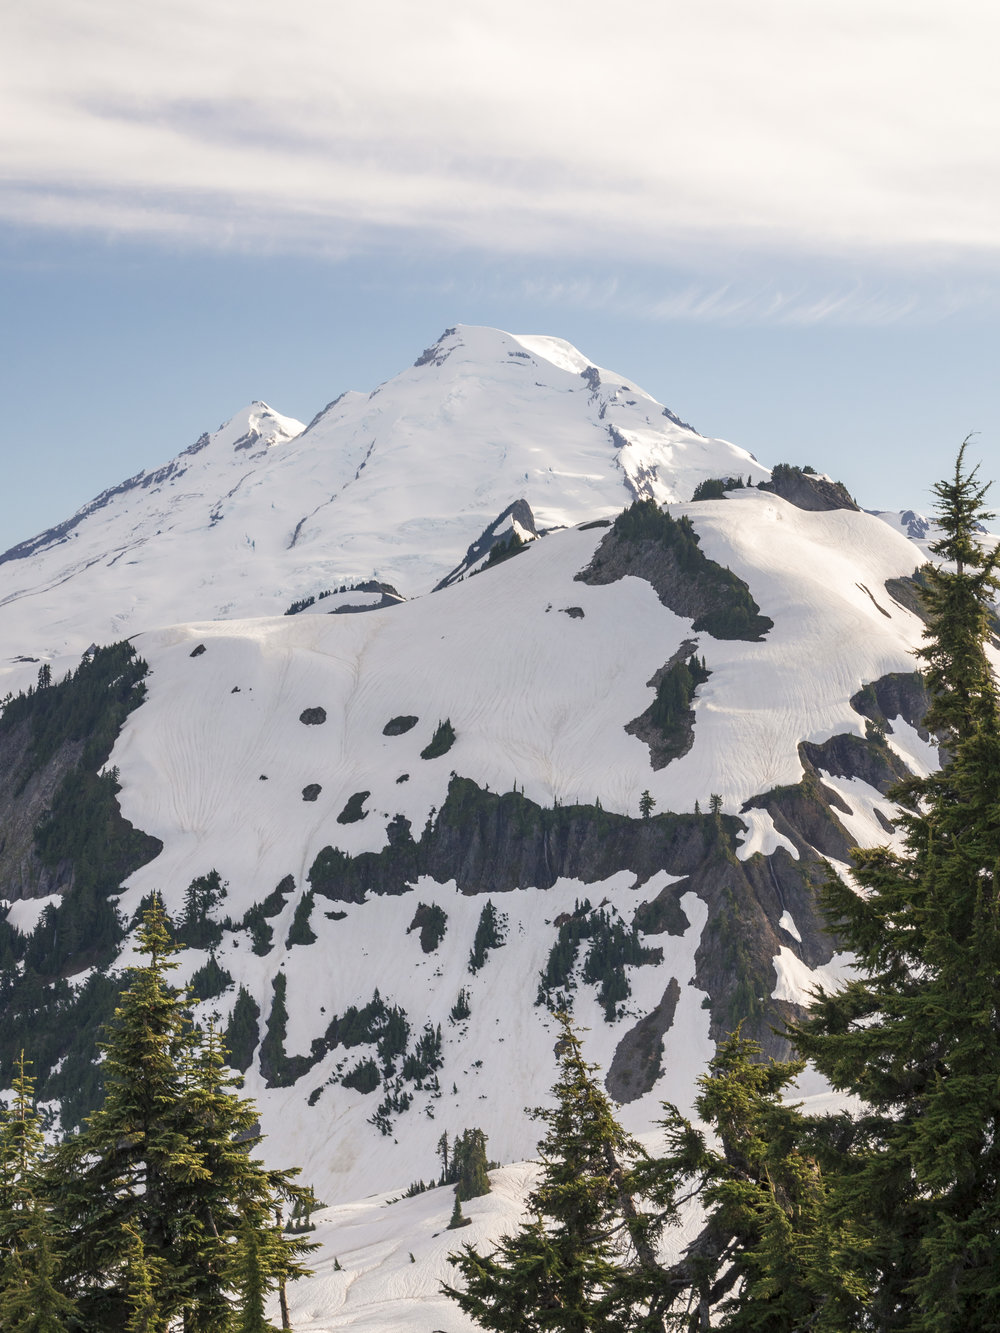 Tall_Portrait_of_Mount_Baker_on_Sunny_Day_in_Washington_State.jpg